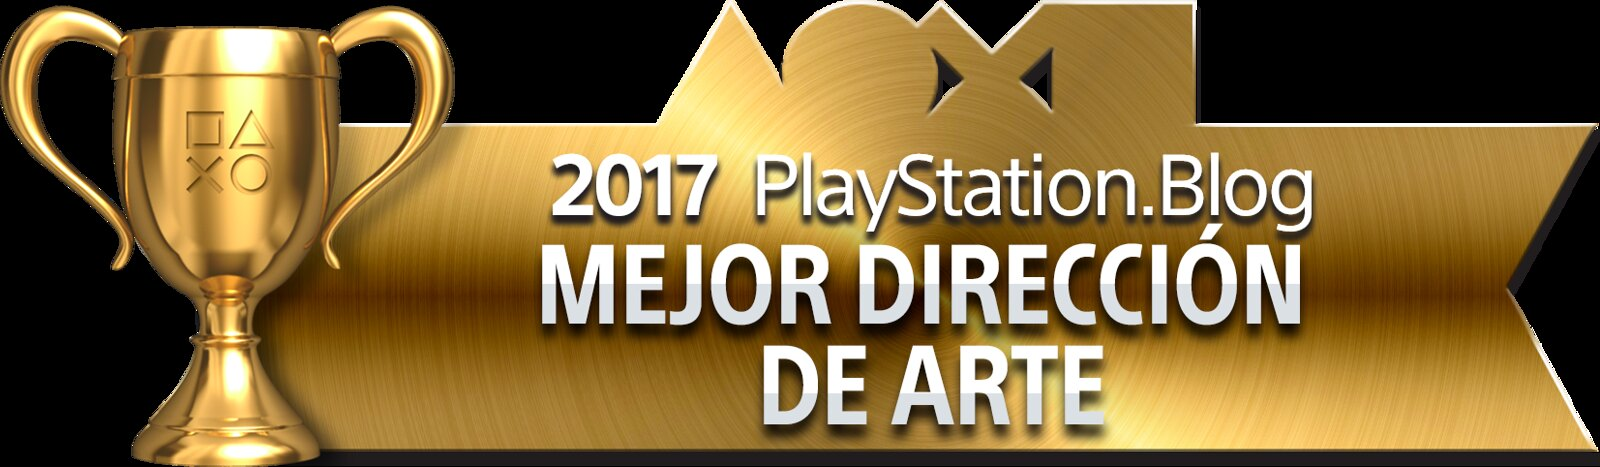 PlayStation Blog Game of the Year 2017 - Best Art Direction (Gold)